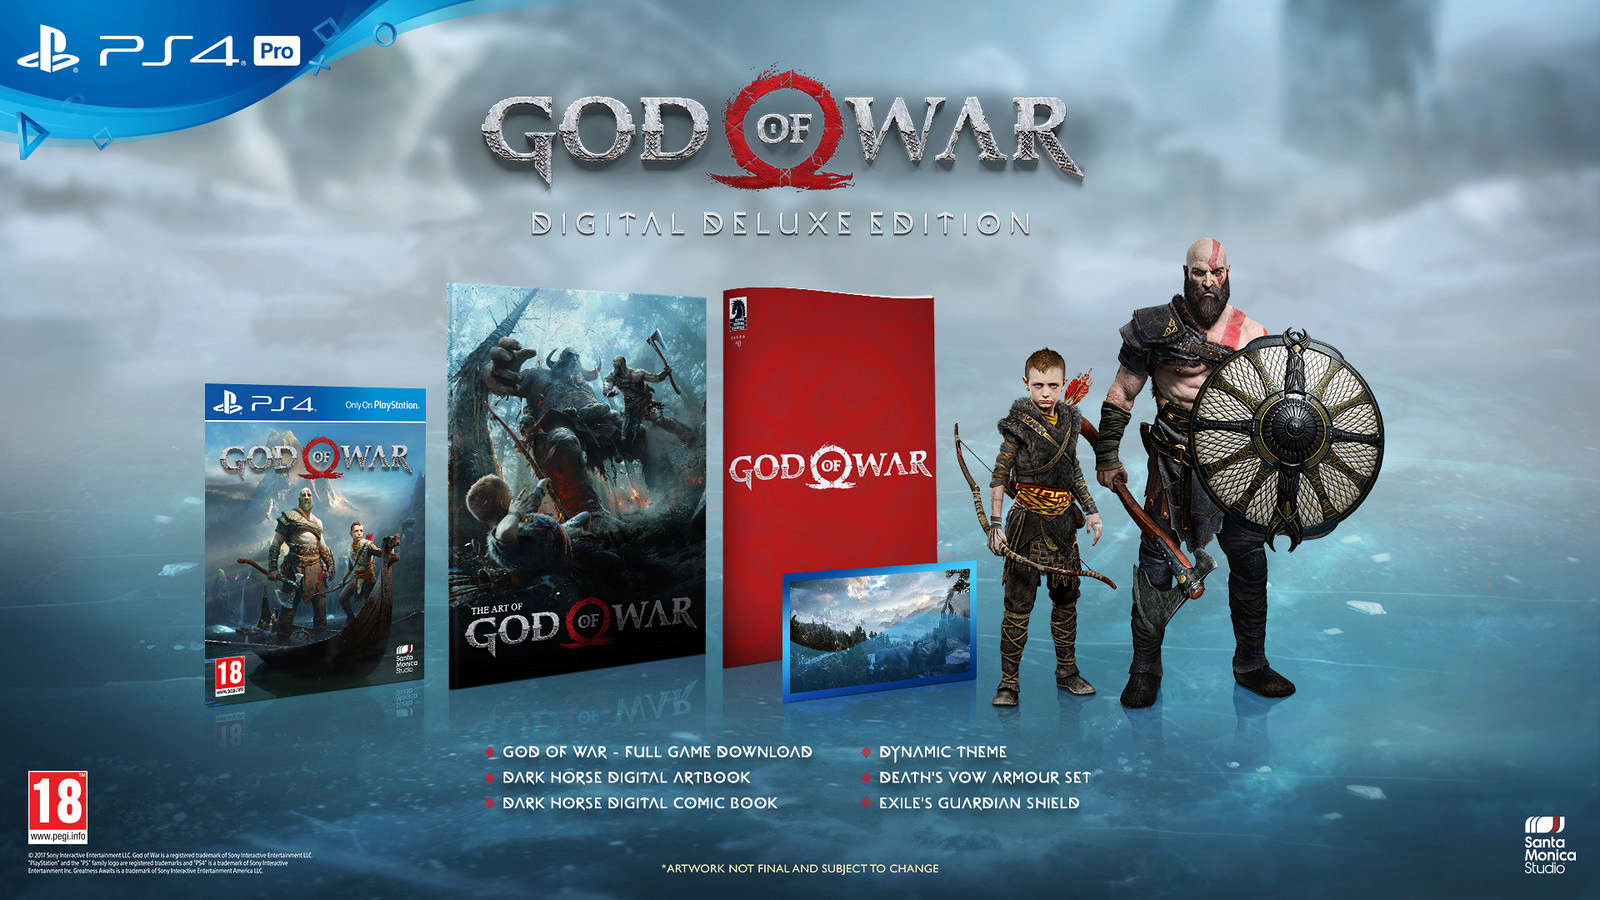 God of War - Digital Deluxe Edition